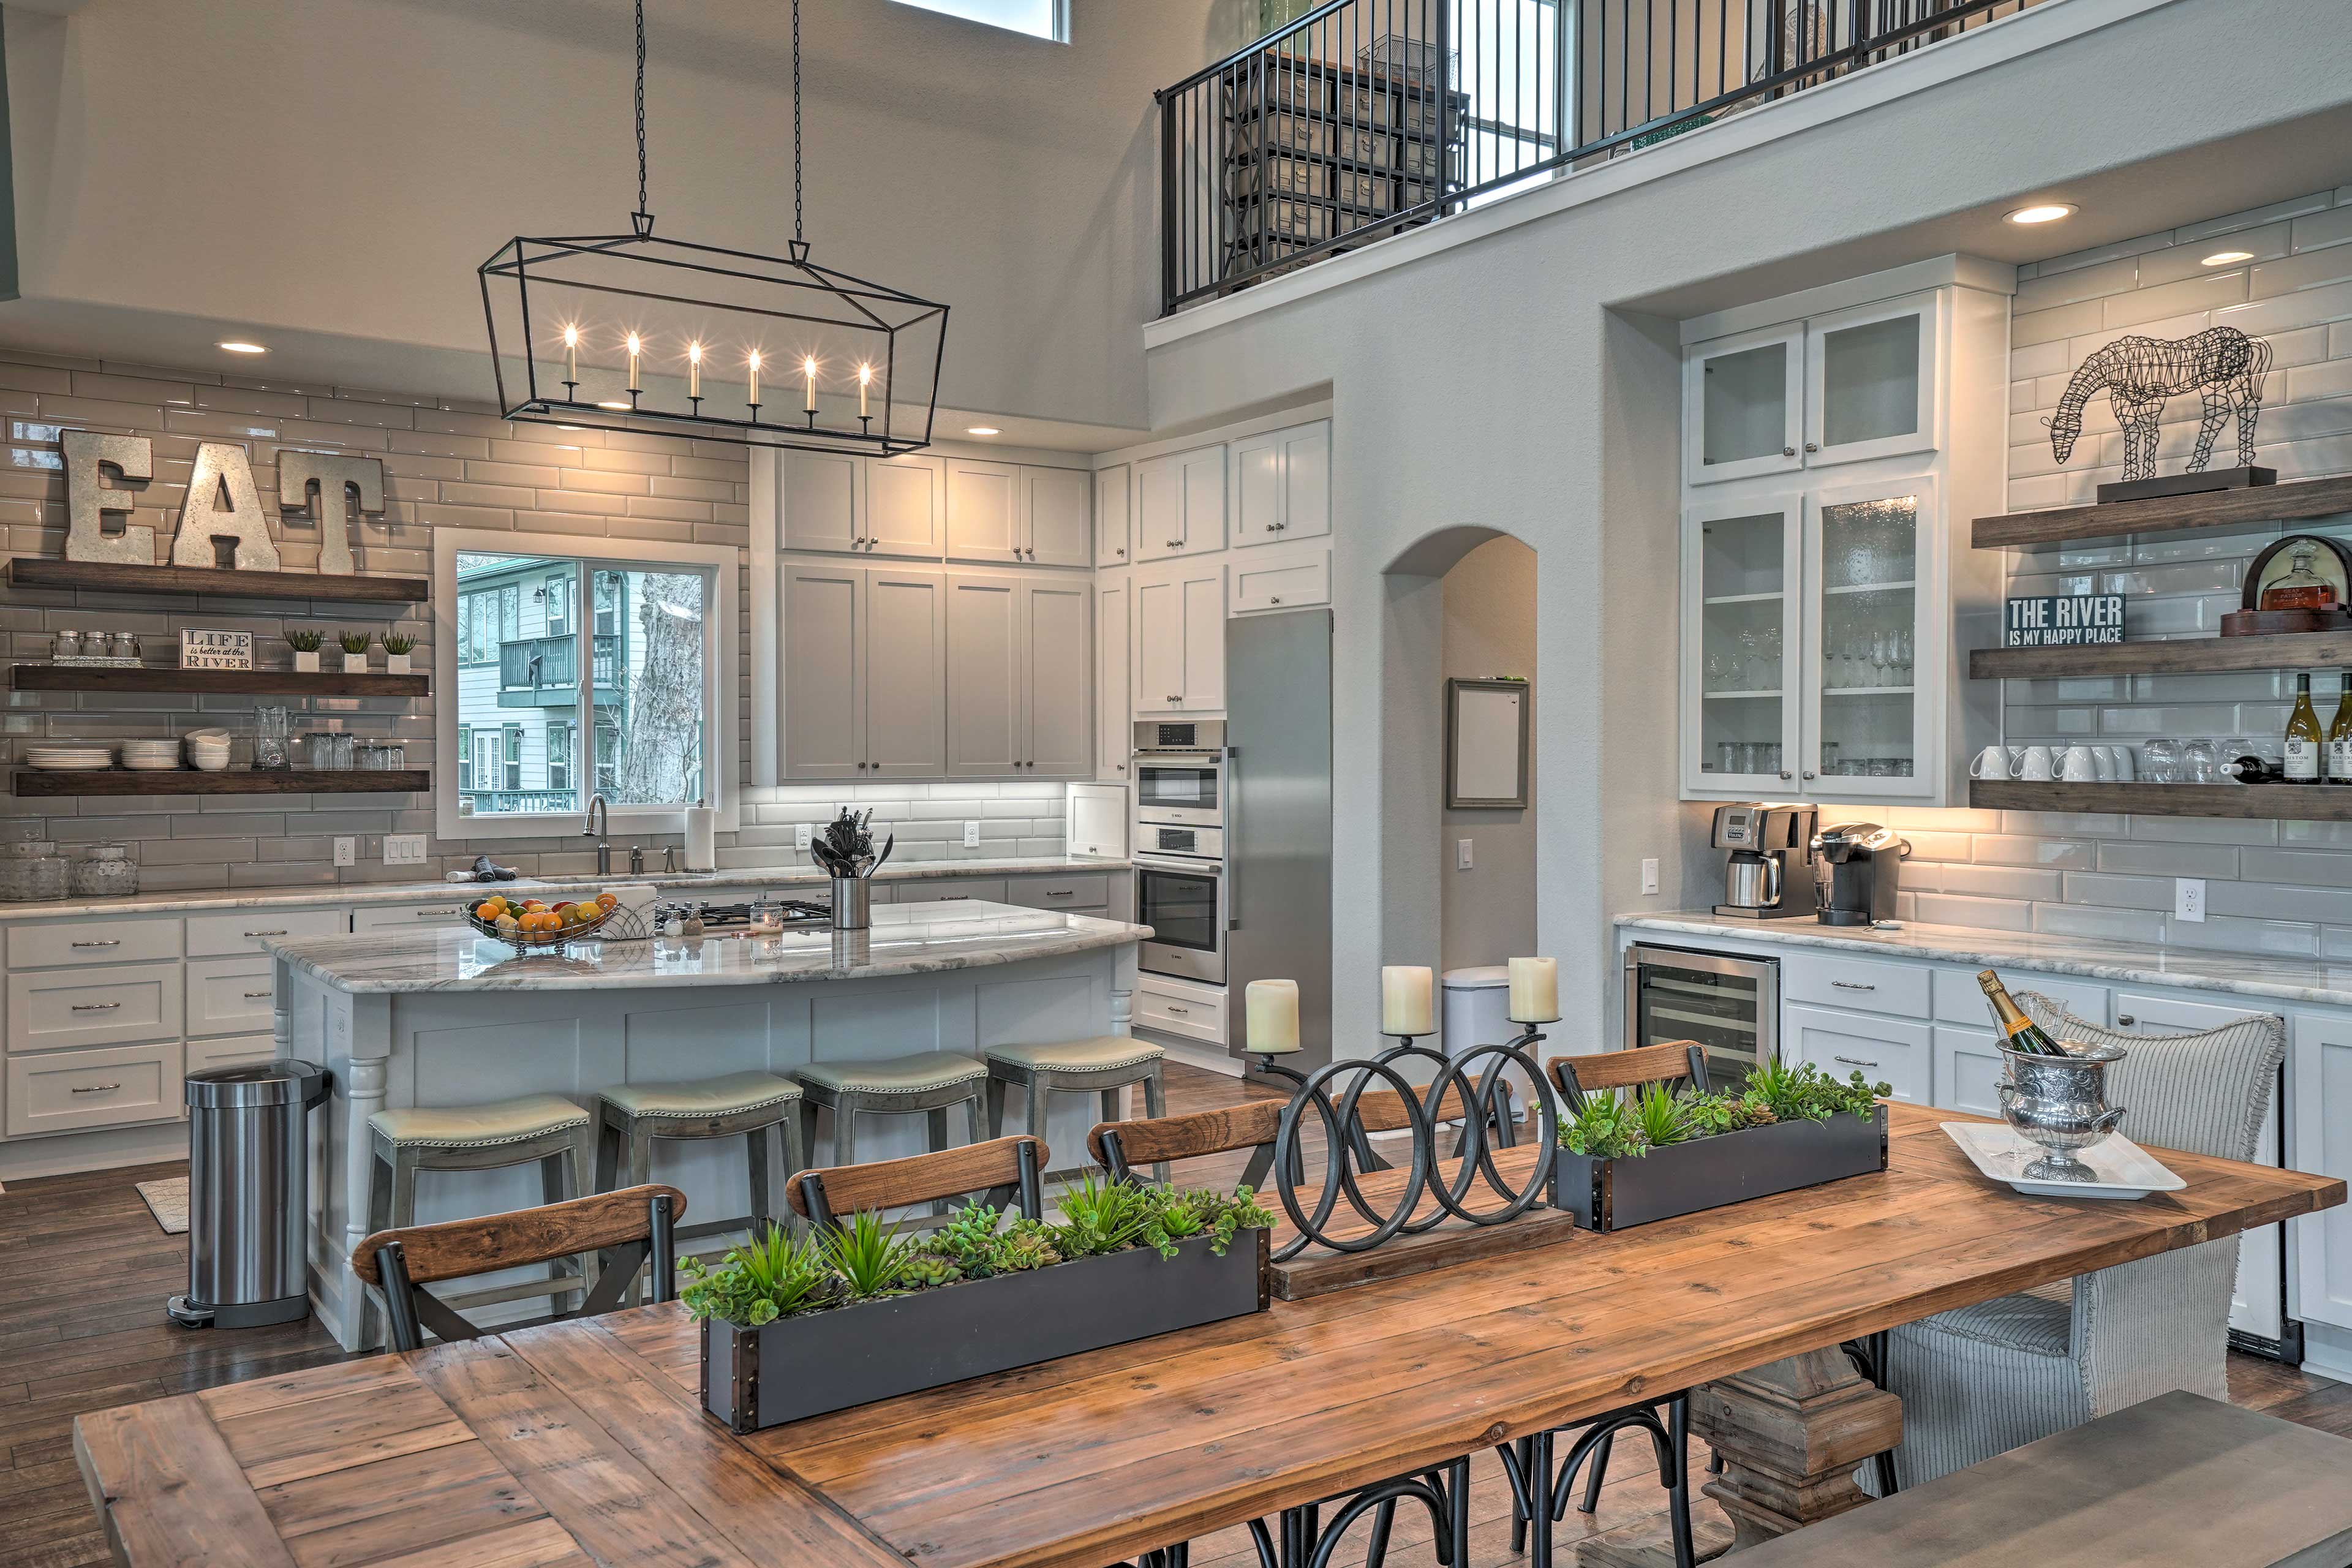 This area features a rustic-chic farmhouse style with lots of open space.